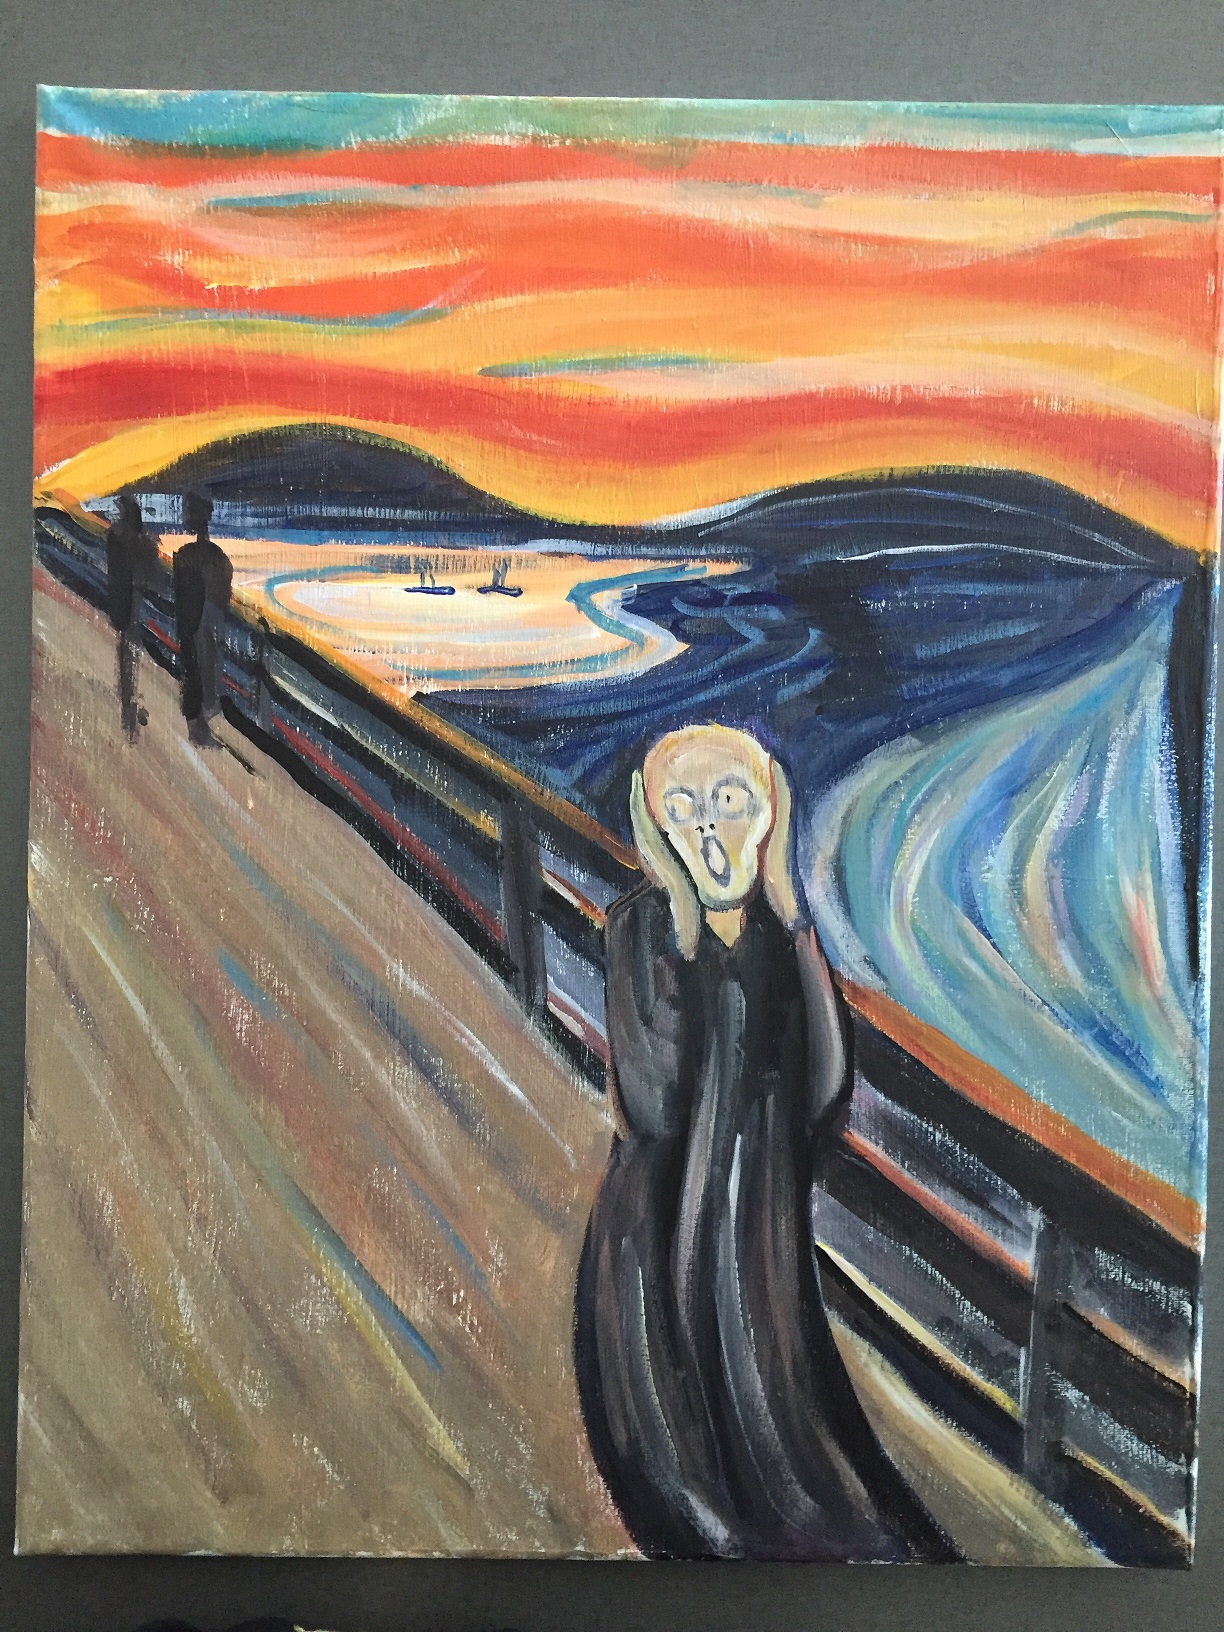 Modern Art Painting The Scream By Edvard Munch Paint Sip Night Art Painting Drink Food 100 Braid St Studios